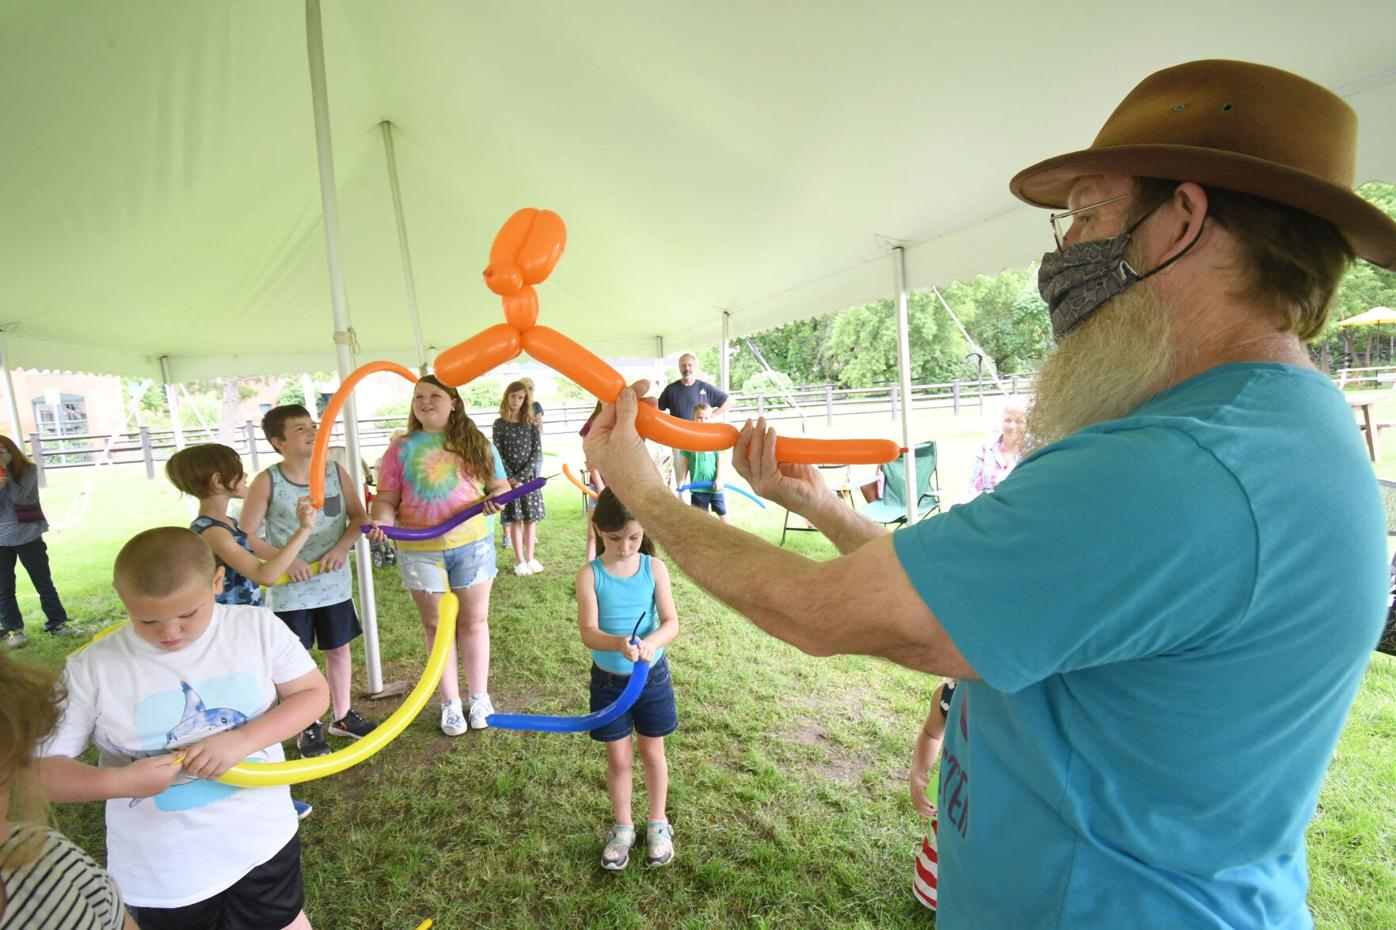 Ed shows kids how to make balloon animals